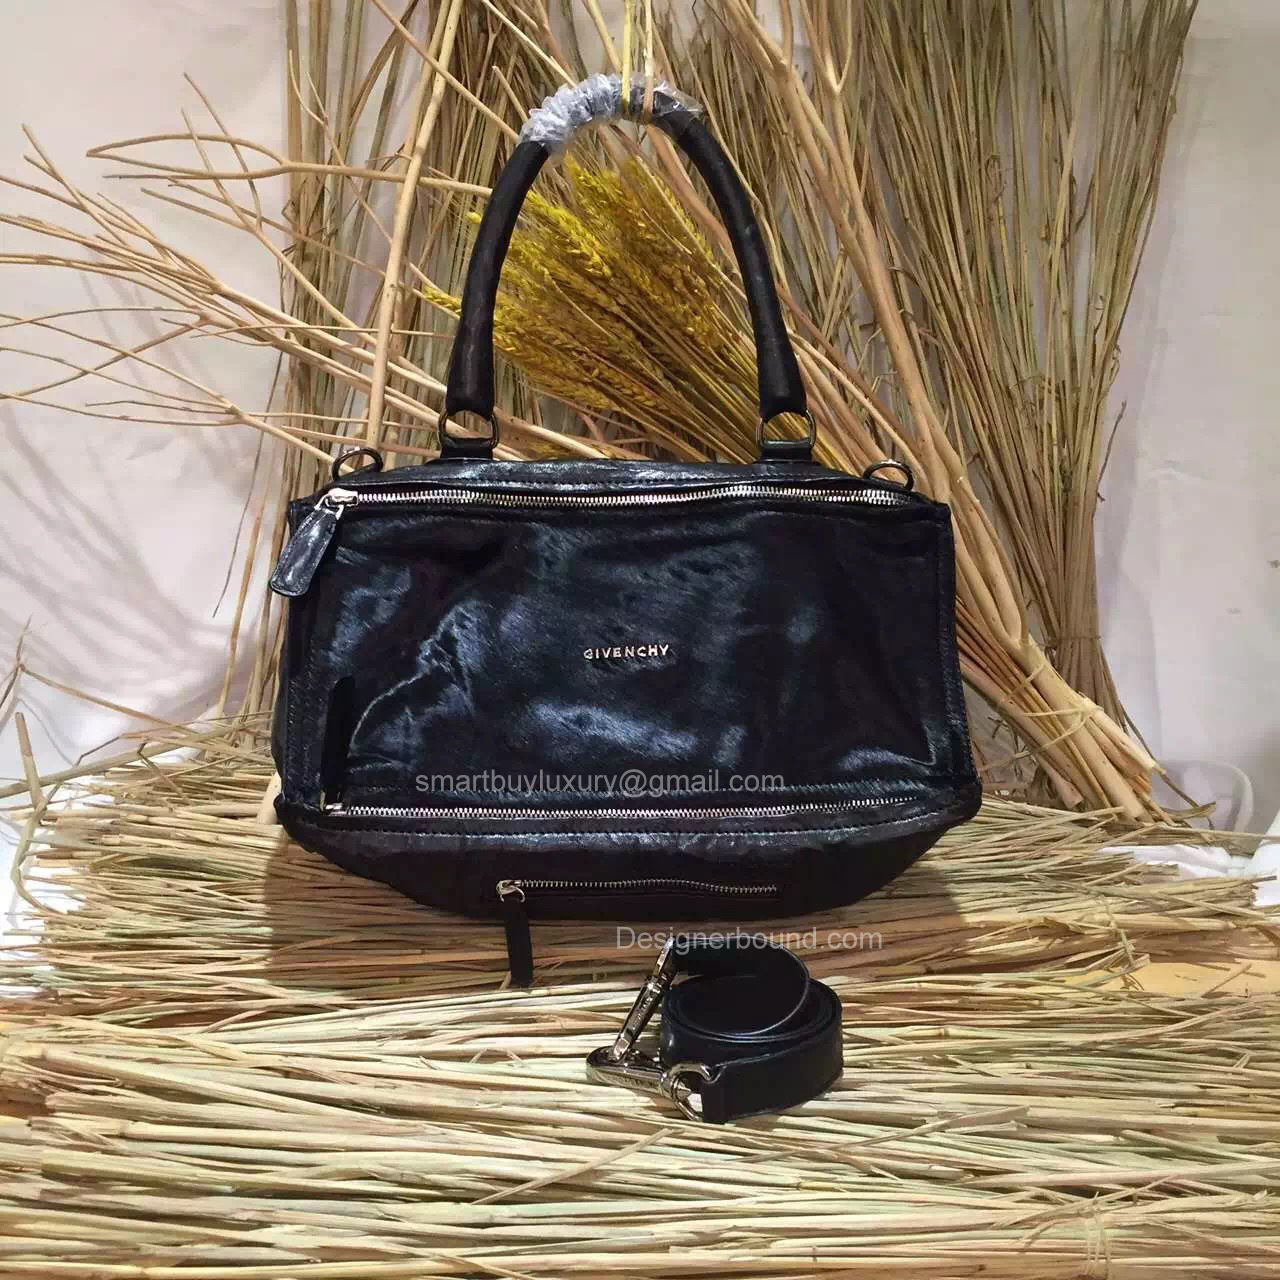 Givenchy Large Pandora Black Bag with Pony Hair 285165